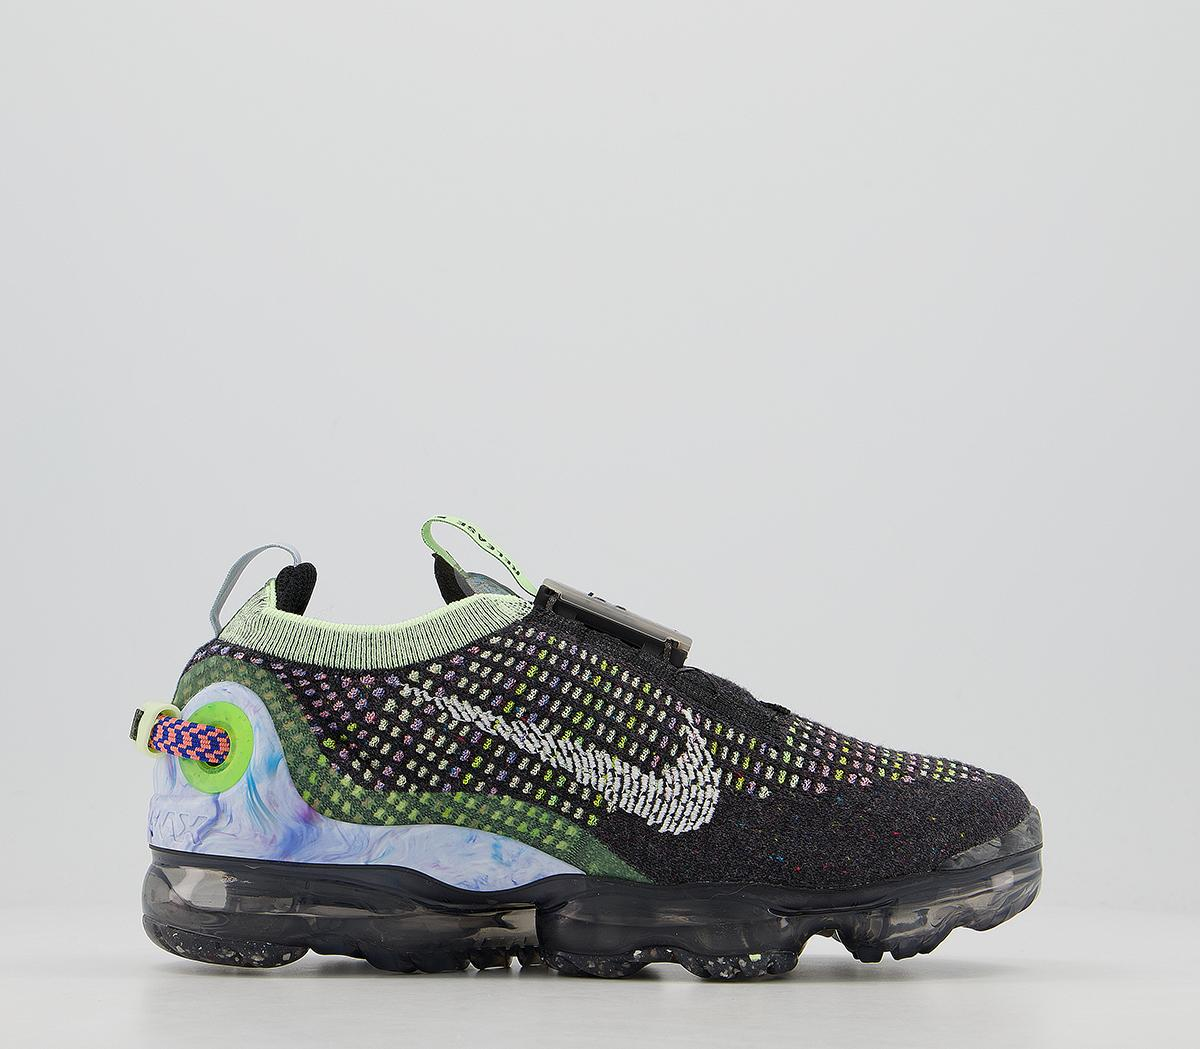 Air Vapormax 2020 Fk Trainers